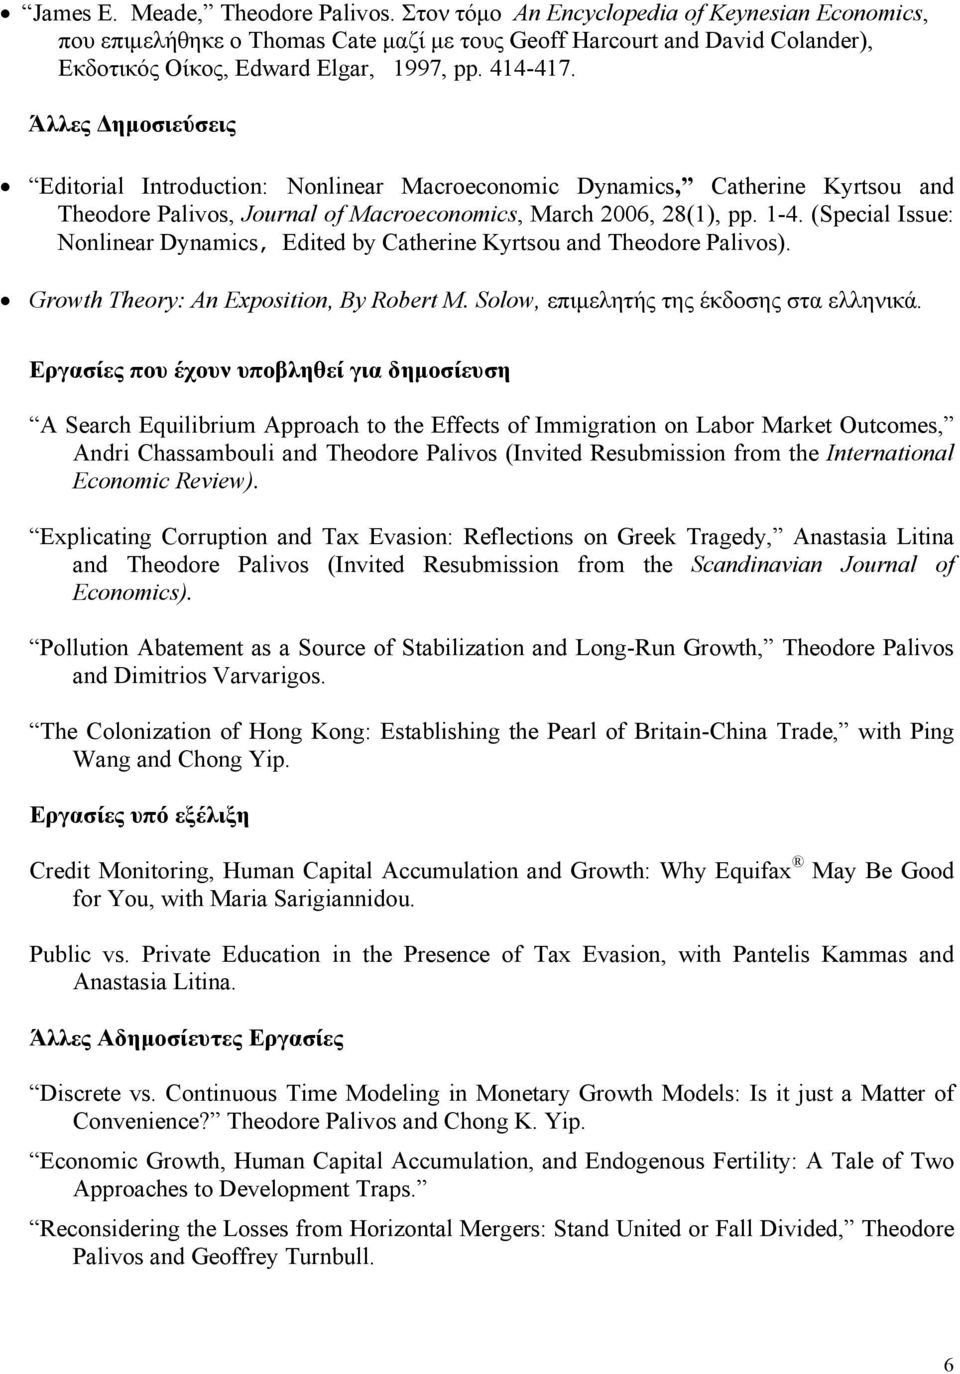 Άλλες Δημοσιεύσεις Editorial Introduction: Nonlinear Macroeconomic Dynamics, Catherine Kyrtsou and Theodore Palivos, Journal of Macroeconomics, March 2006, 28(1), pp. 1-4.